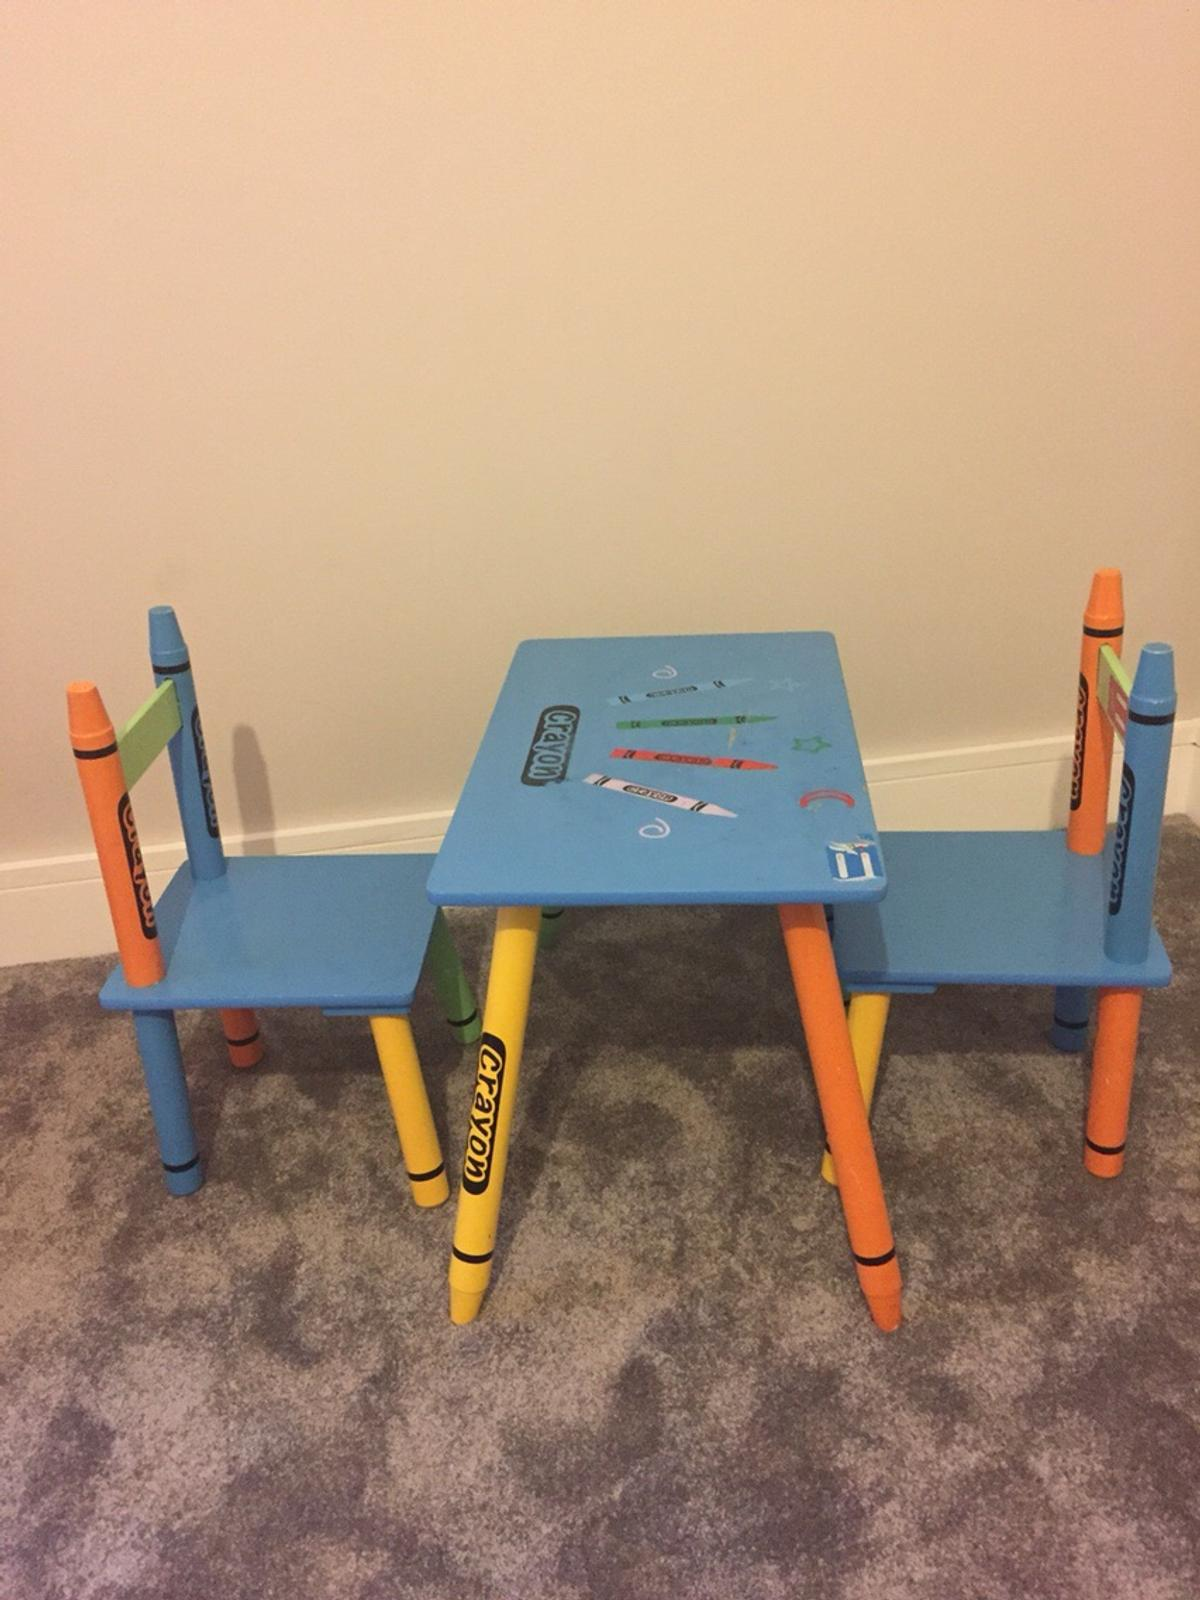 Sensational Crayon Kids Table And Chairs Ocoug Best Dining Table And Chair Ideas Images Ocougorg